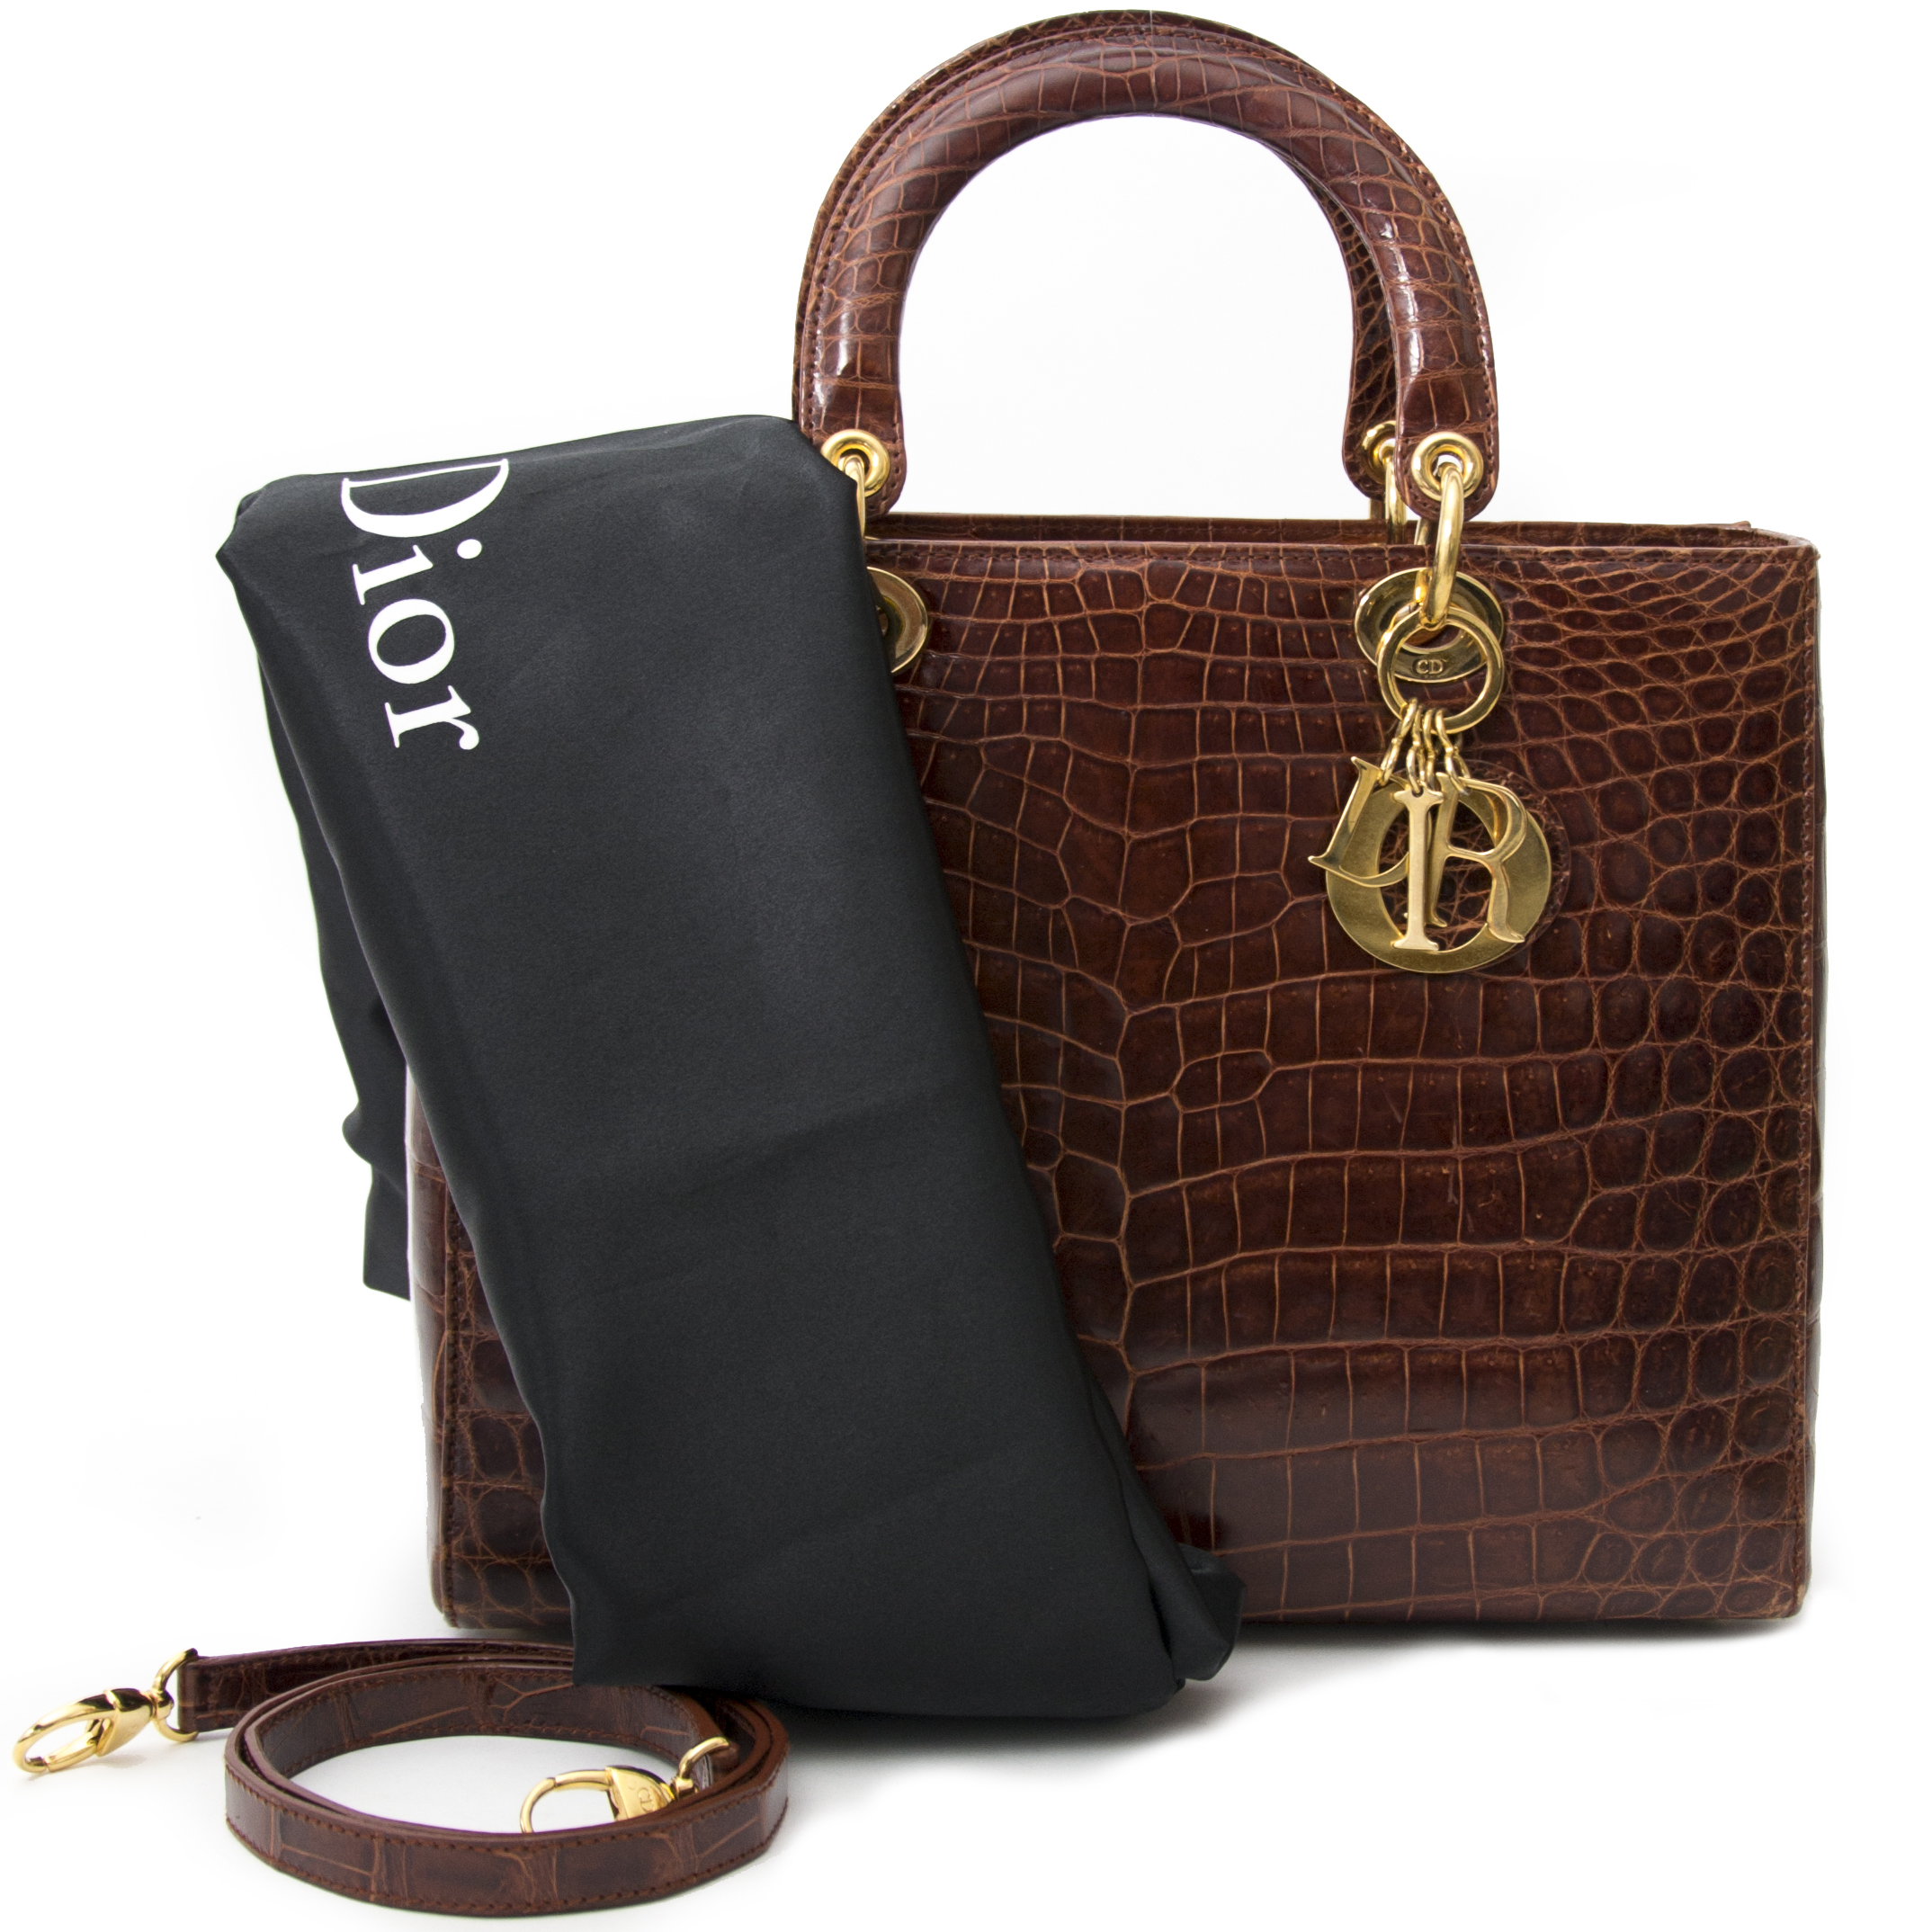 searching for secondhand vintage luxury at the best price ? wolrdwide shipping Dior Croco Lady Dior